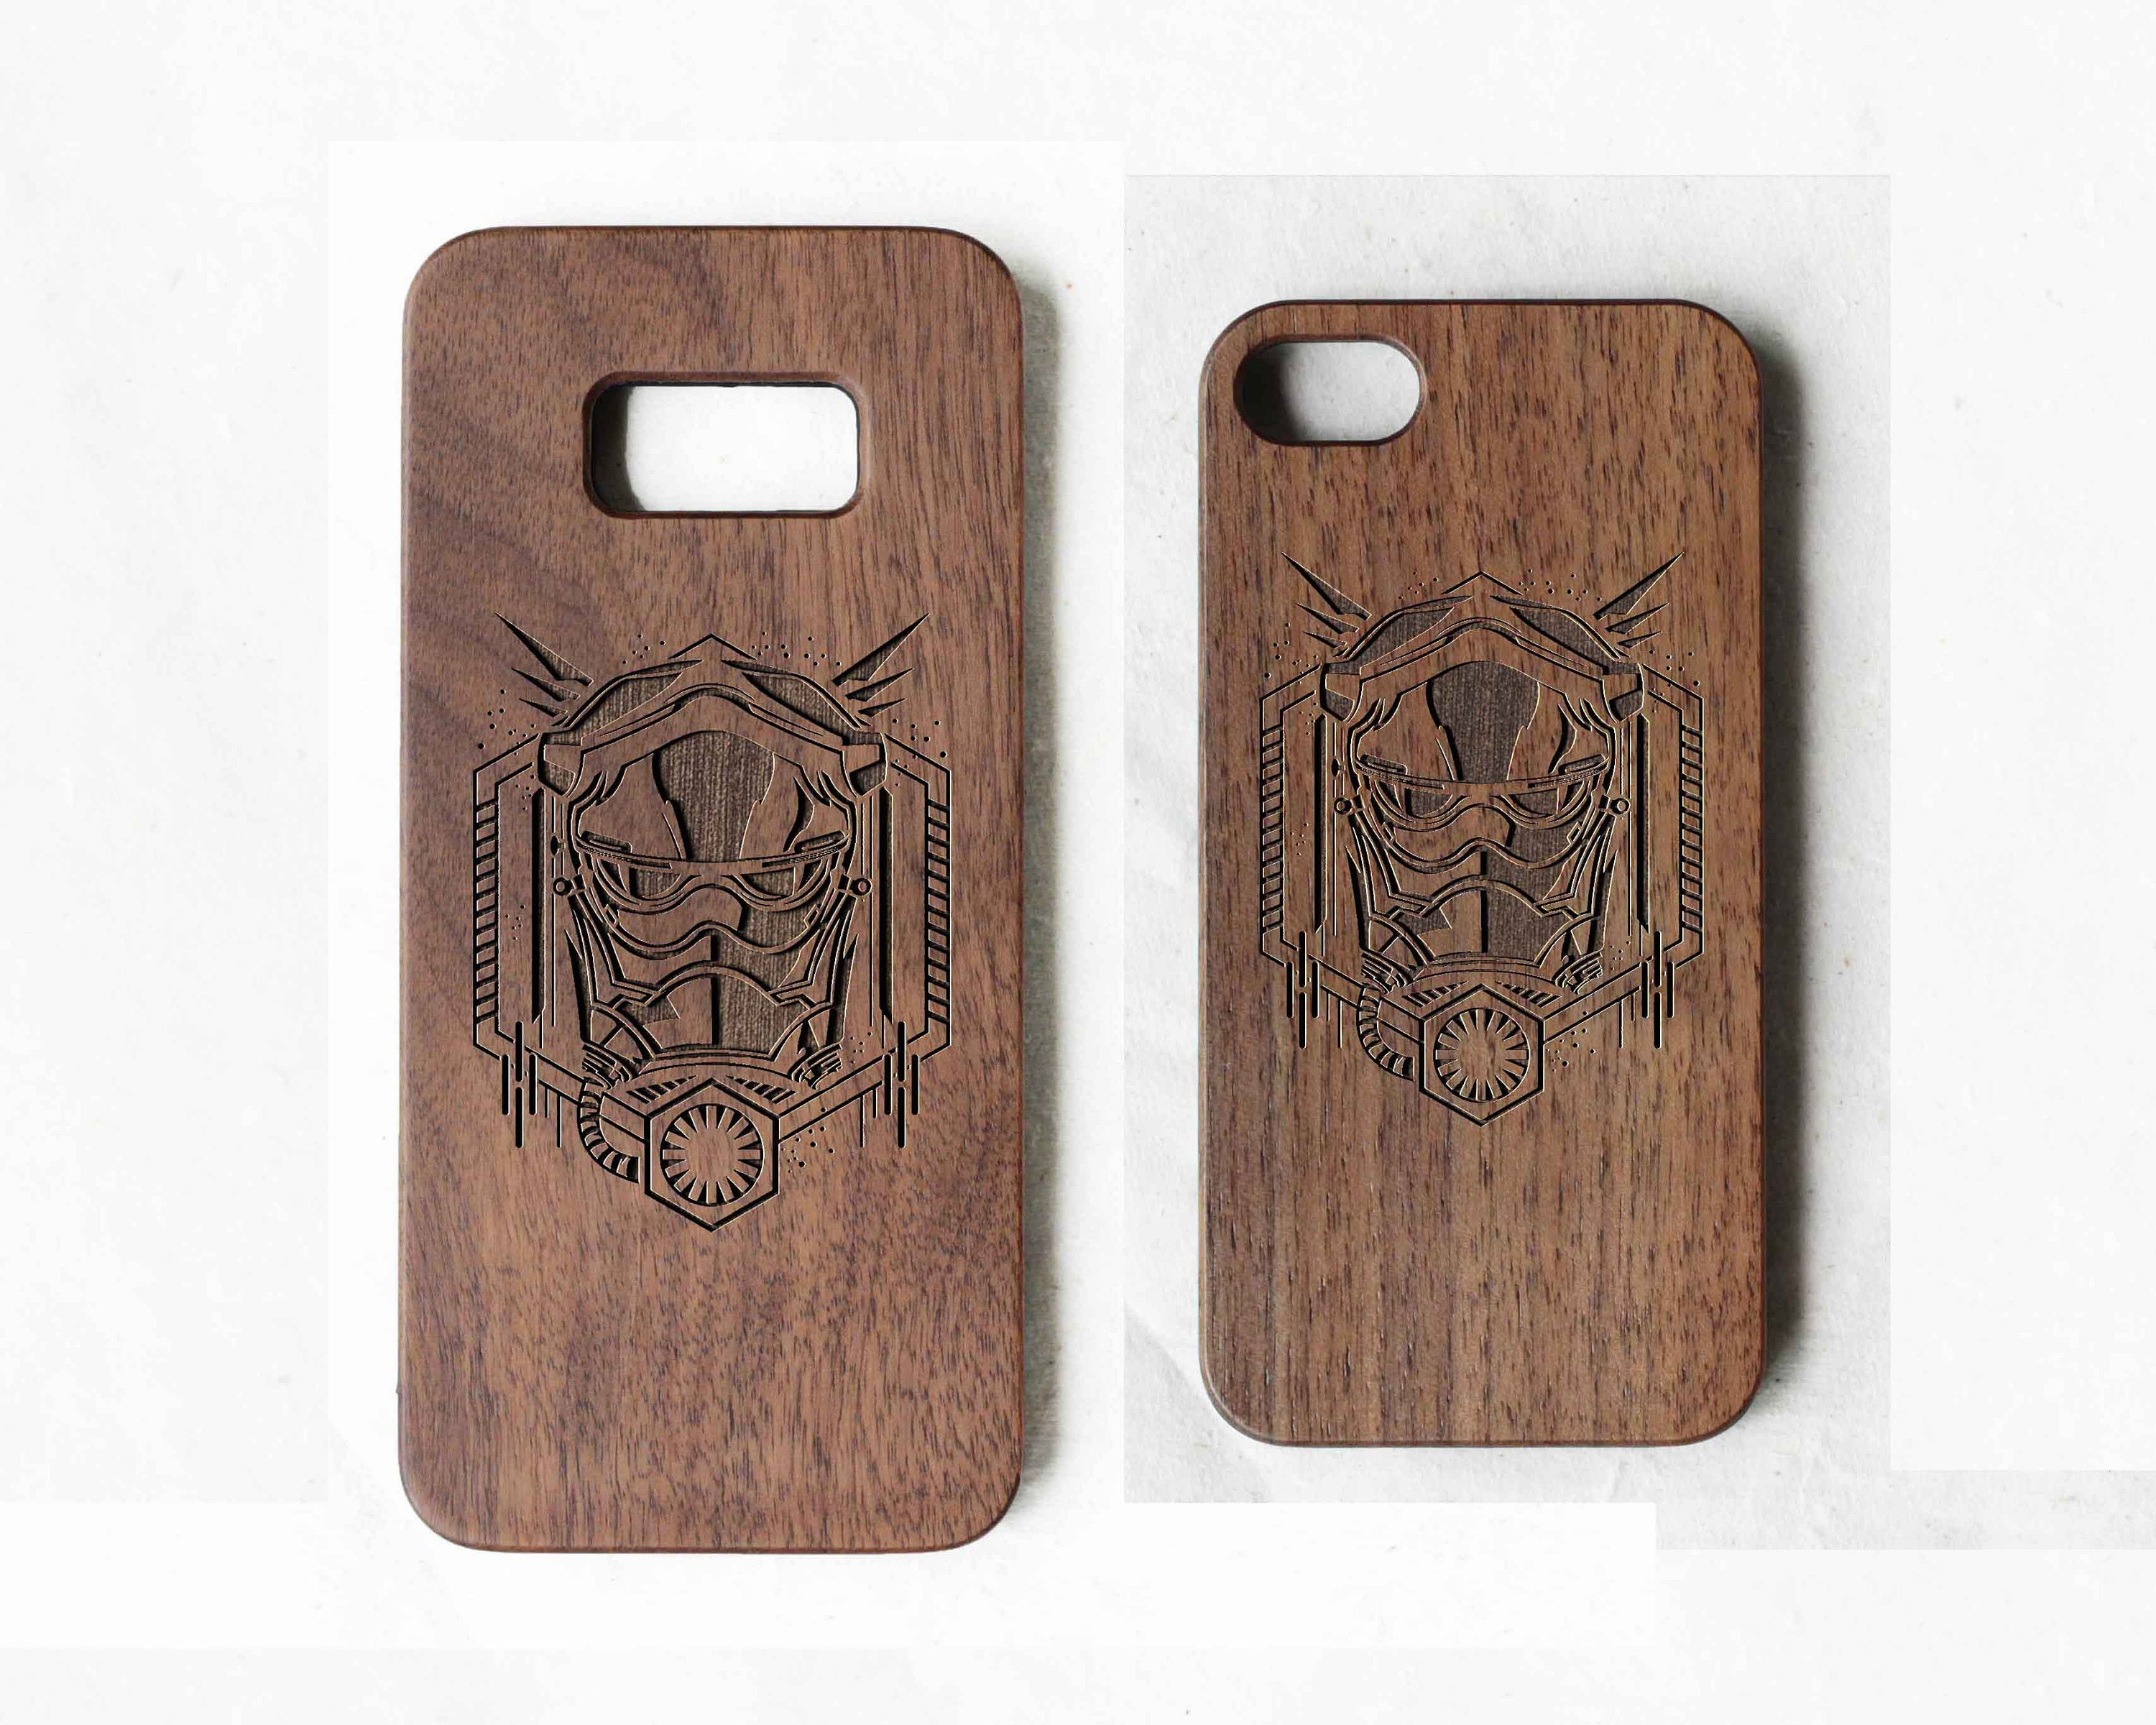 best sneakers c6bbe ffa7f Star wars wood Samsung galaxy S9 case, wood phone case for Samsung Galaxy  S4, S5, S6, S7, S7 edge, S8, S8 plus,S9, S9 plus,